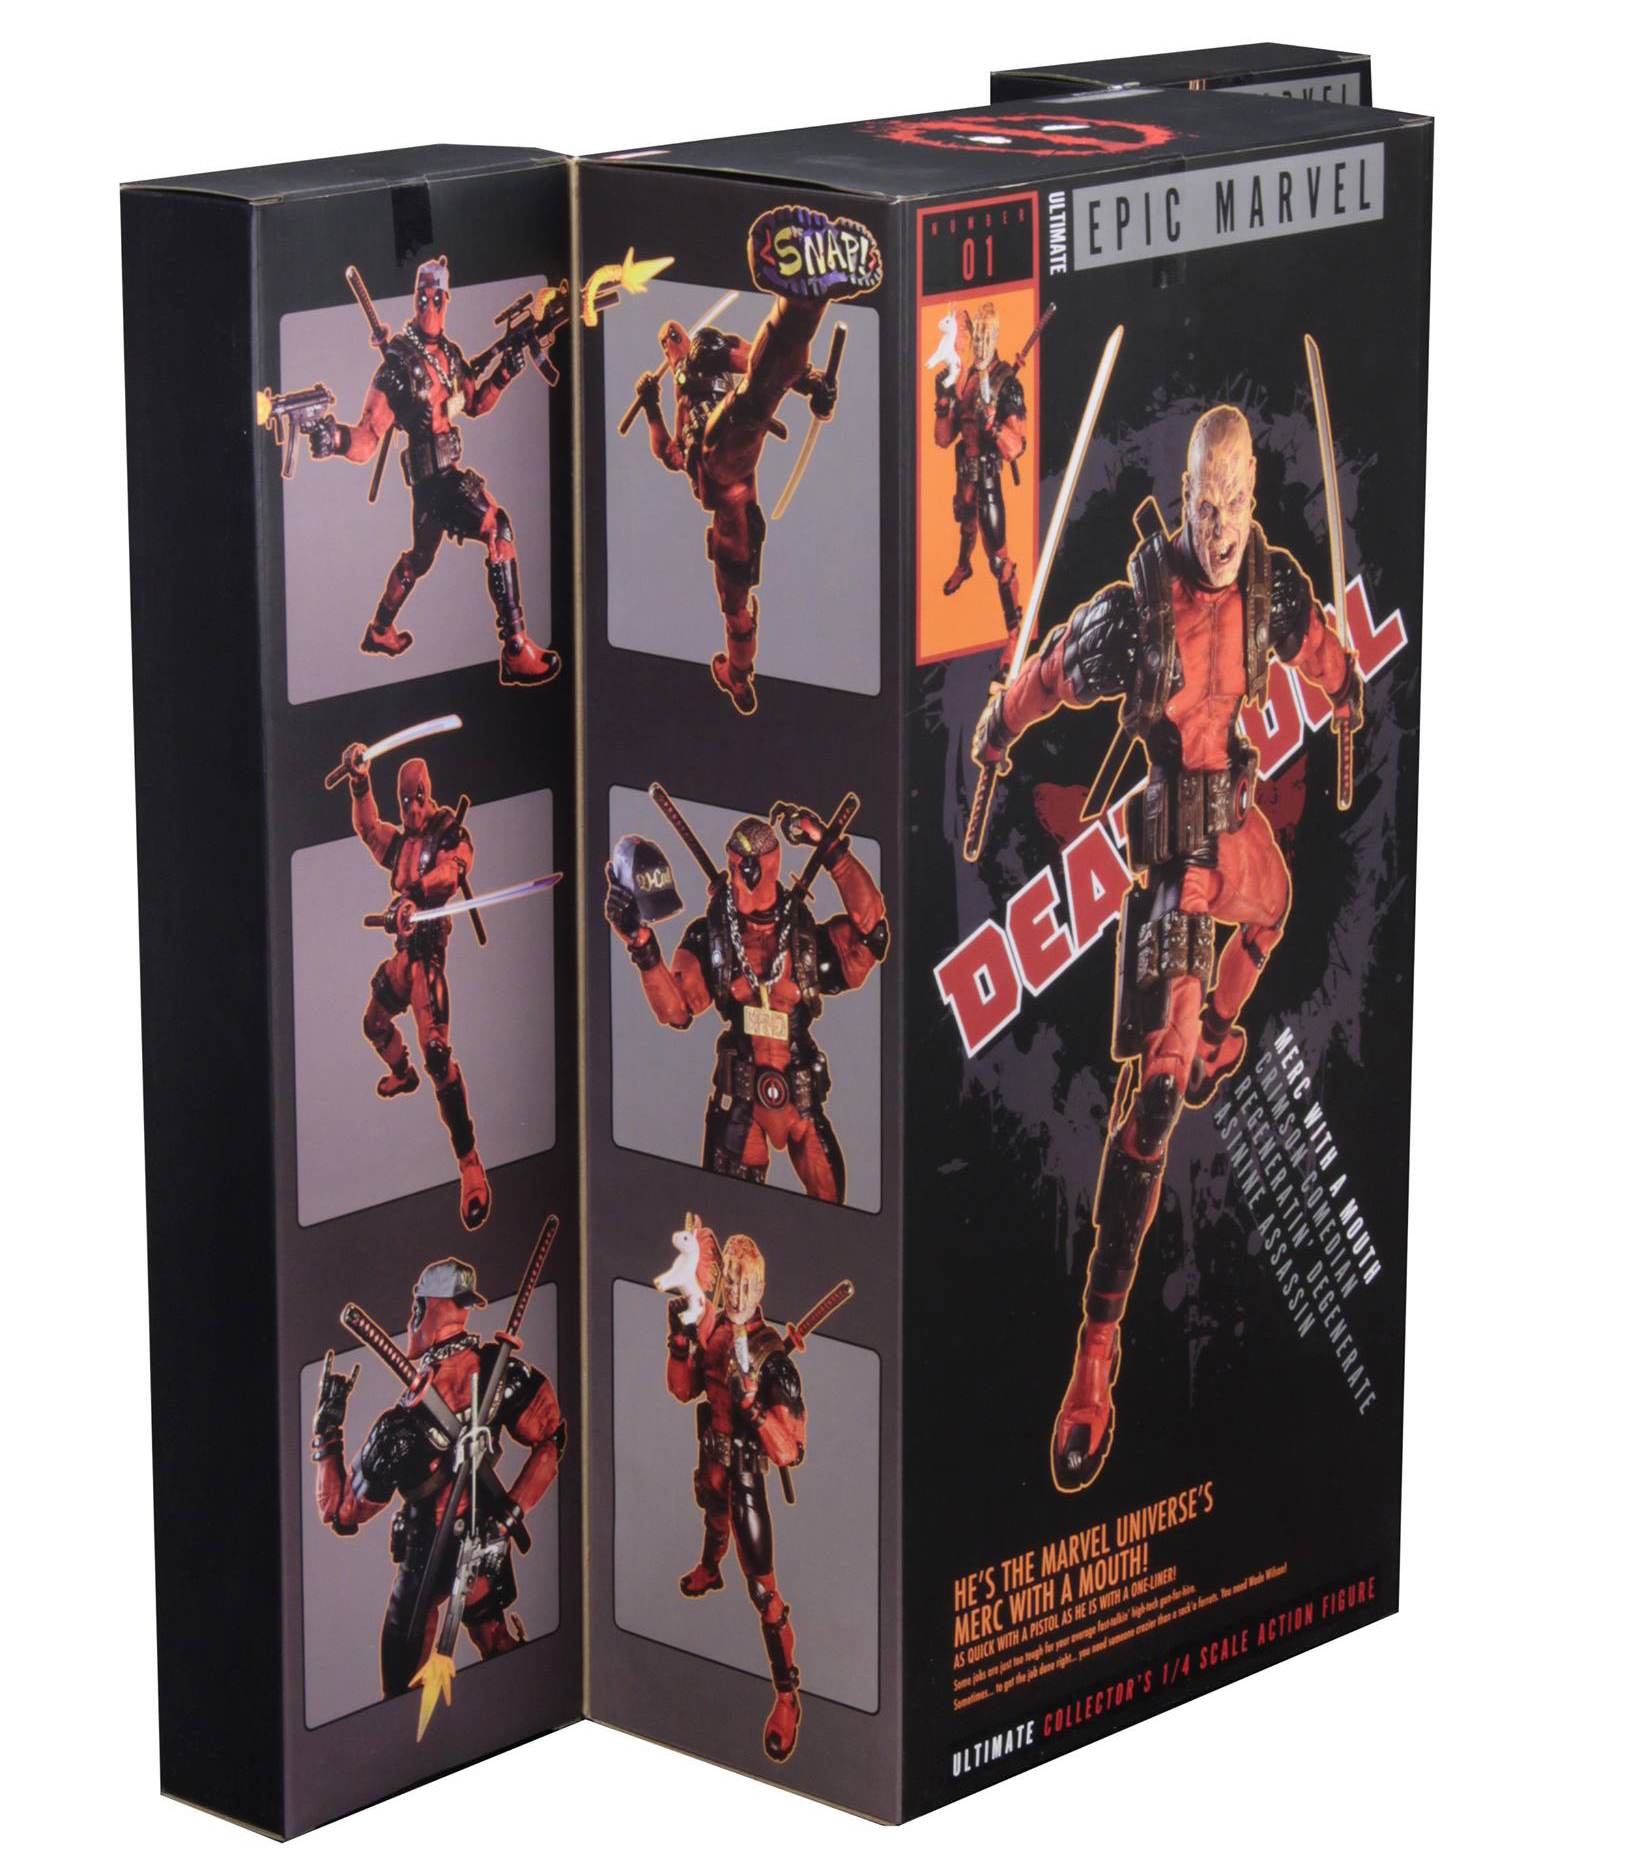 Ultimate-Deadpool-Neca-packaging-1